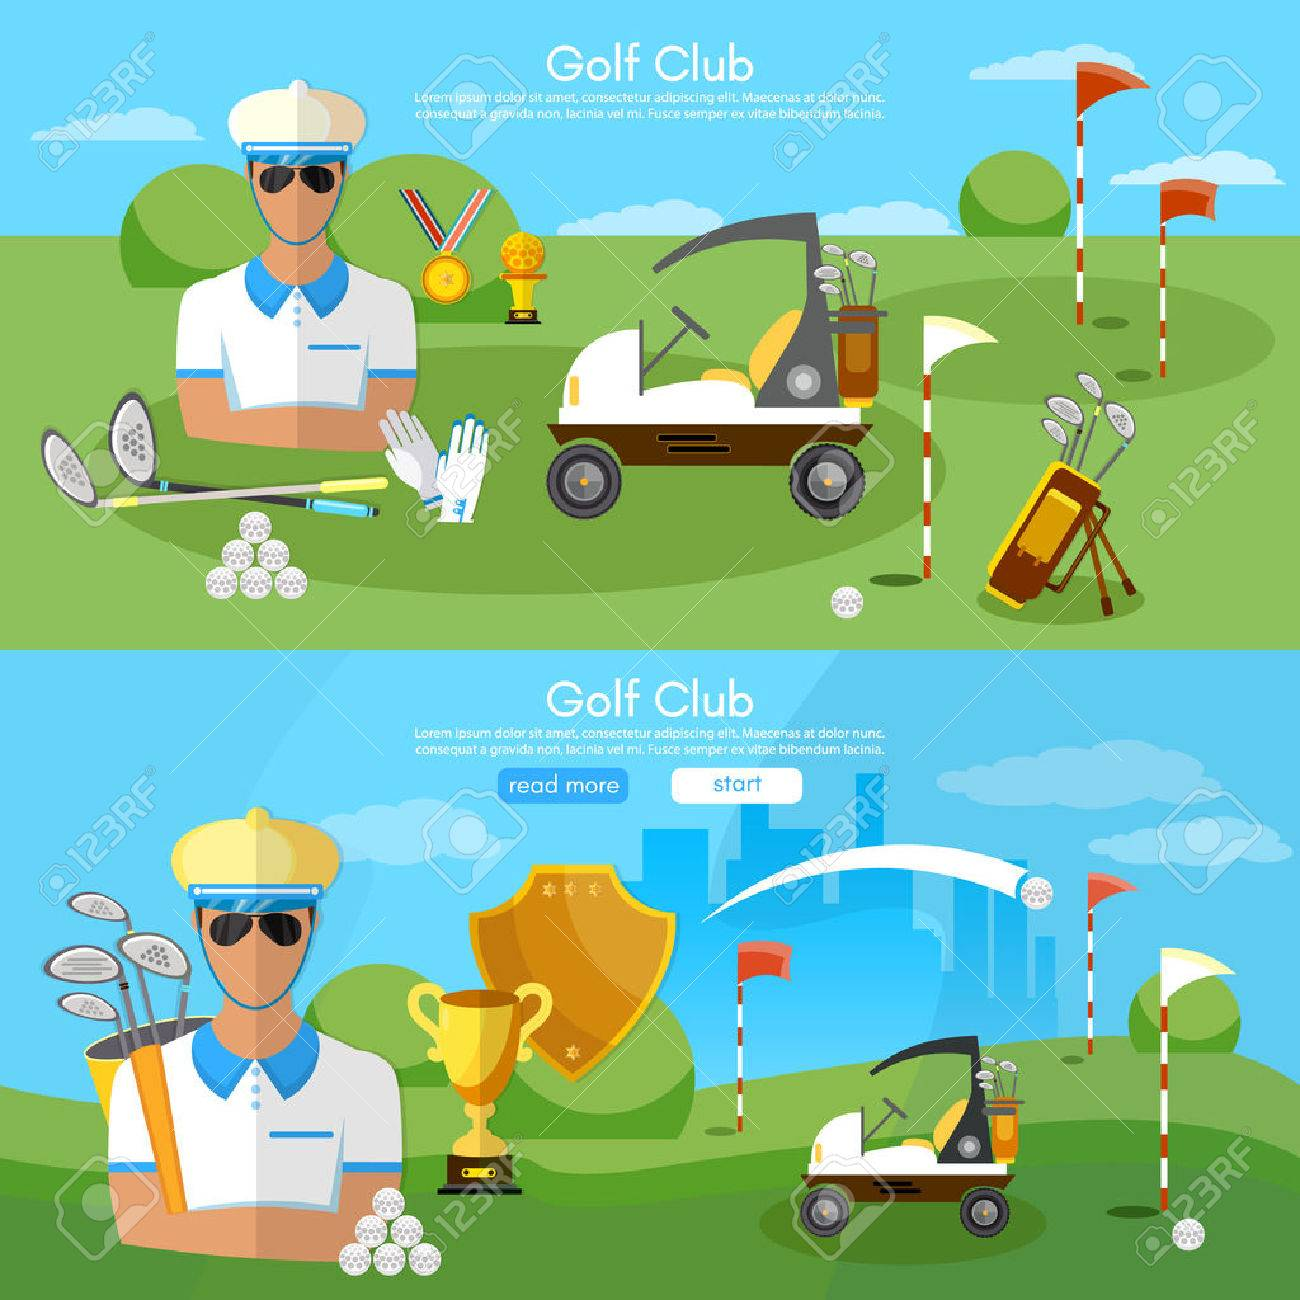 Golf club banners golfing elements game of golf man playing golf vector illustration - 59037513